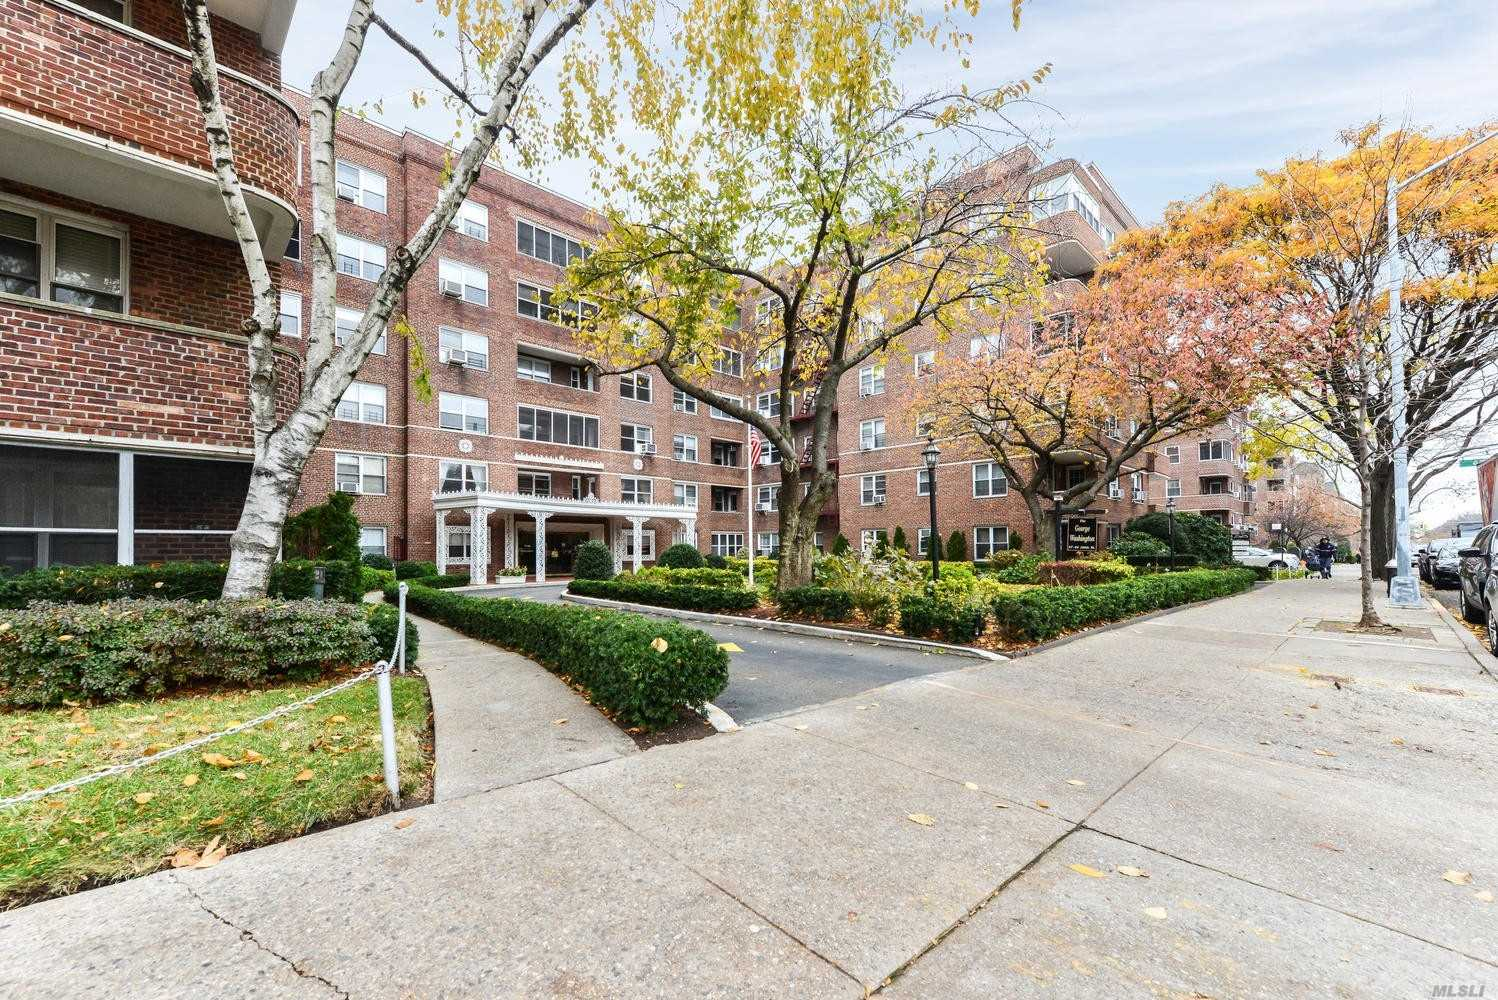 Welcome To The George Washington. Entry Foyer Perfect For Dining. Large Living Room, Renovated Windowed Kitchen And Bath. Great Layout W/ Hardwood Floor Throughout. Junior Br Off The Living Room With A Large Window. Spacious Master Bedroom Away From The Living Room With Plenty Of Closets. Luxury 24 Hour Doorman Building Zoned For P.S196. Gym, Storage And Parking Available. Convenient To Trains, Parks, And Shops.